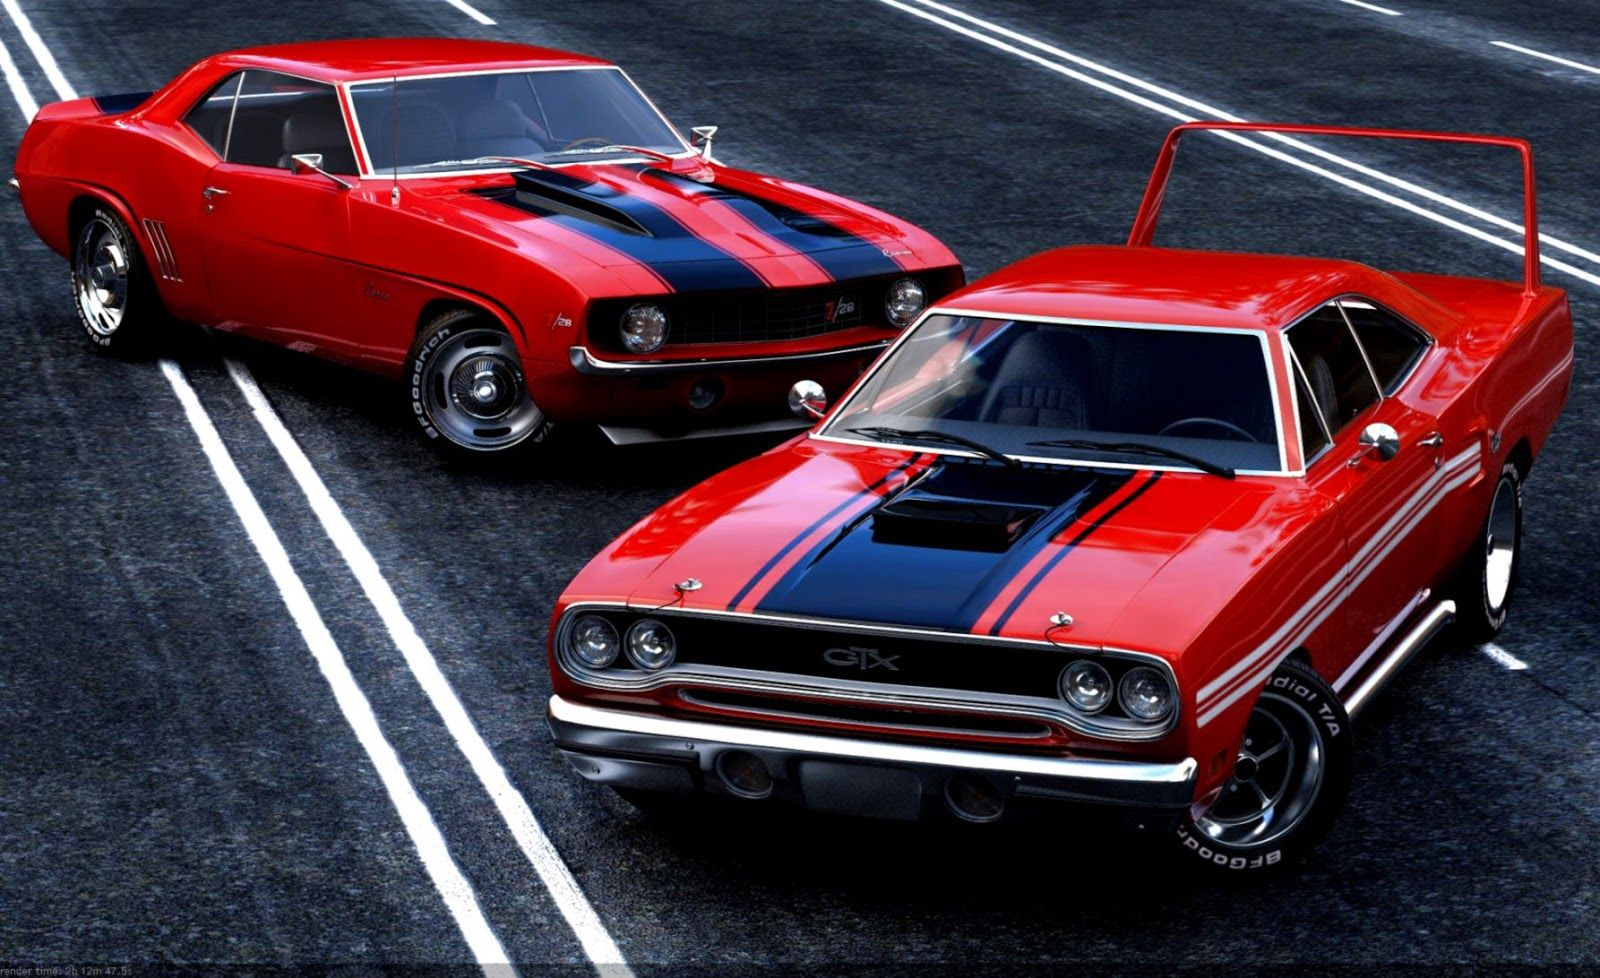 Classic Muscle Car Wallpapers Widescreen Classic Cars Muscle Classic Cars Muscle Cars